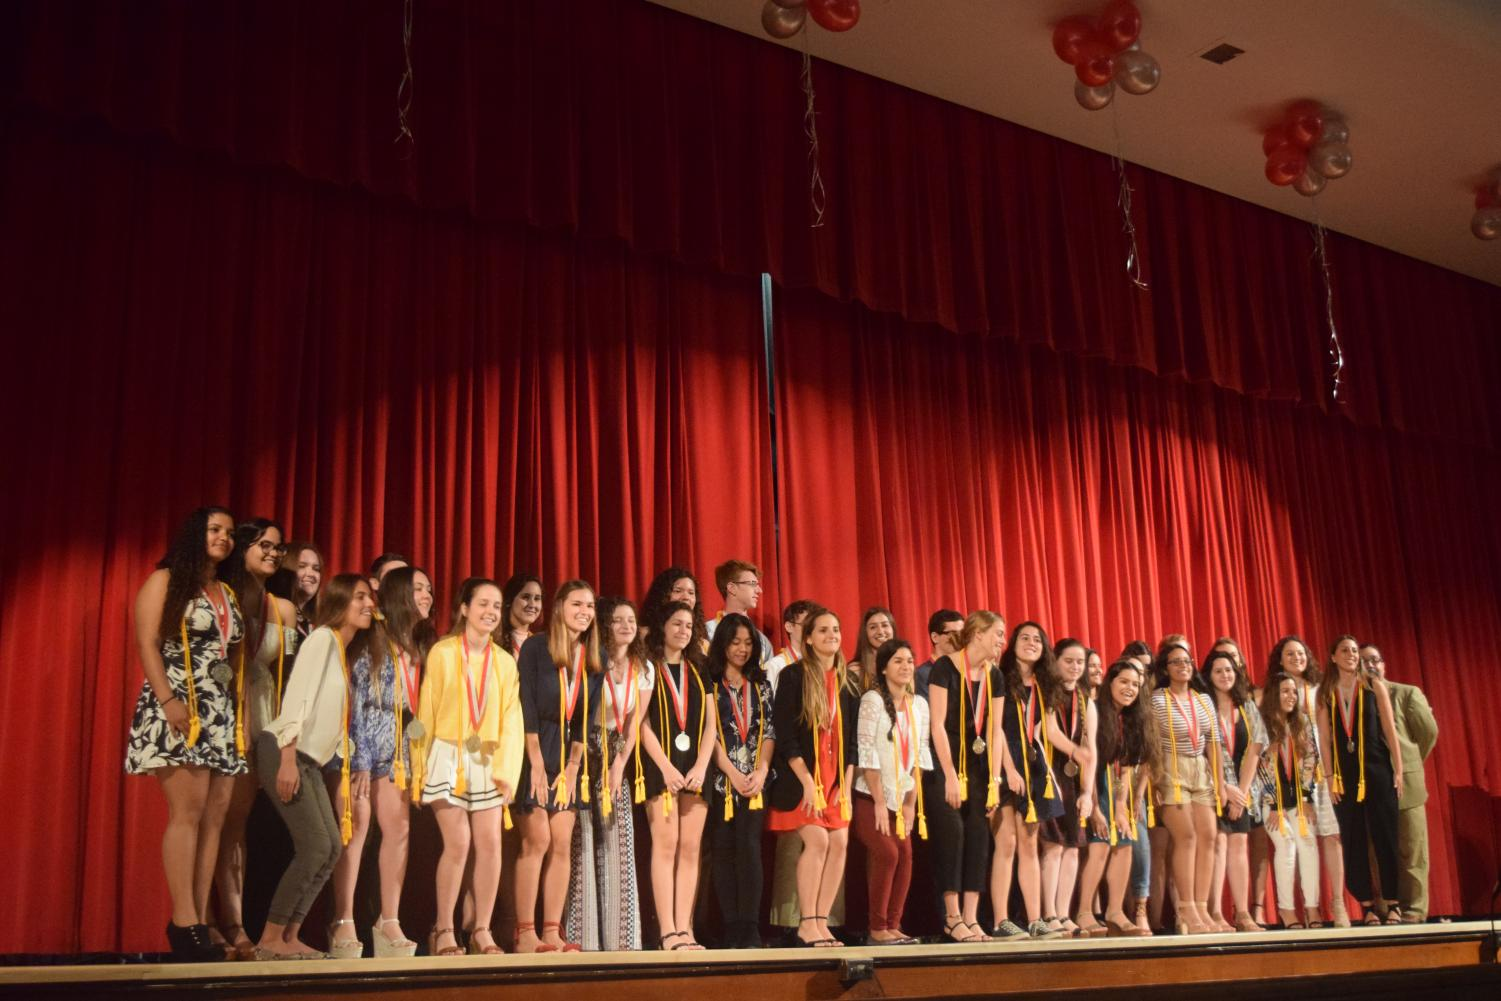 Class of 2019 Summa cum laude students pose for a photo after being awarded their medal and tassel for graduation.